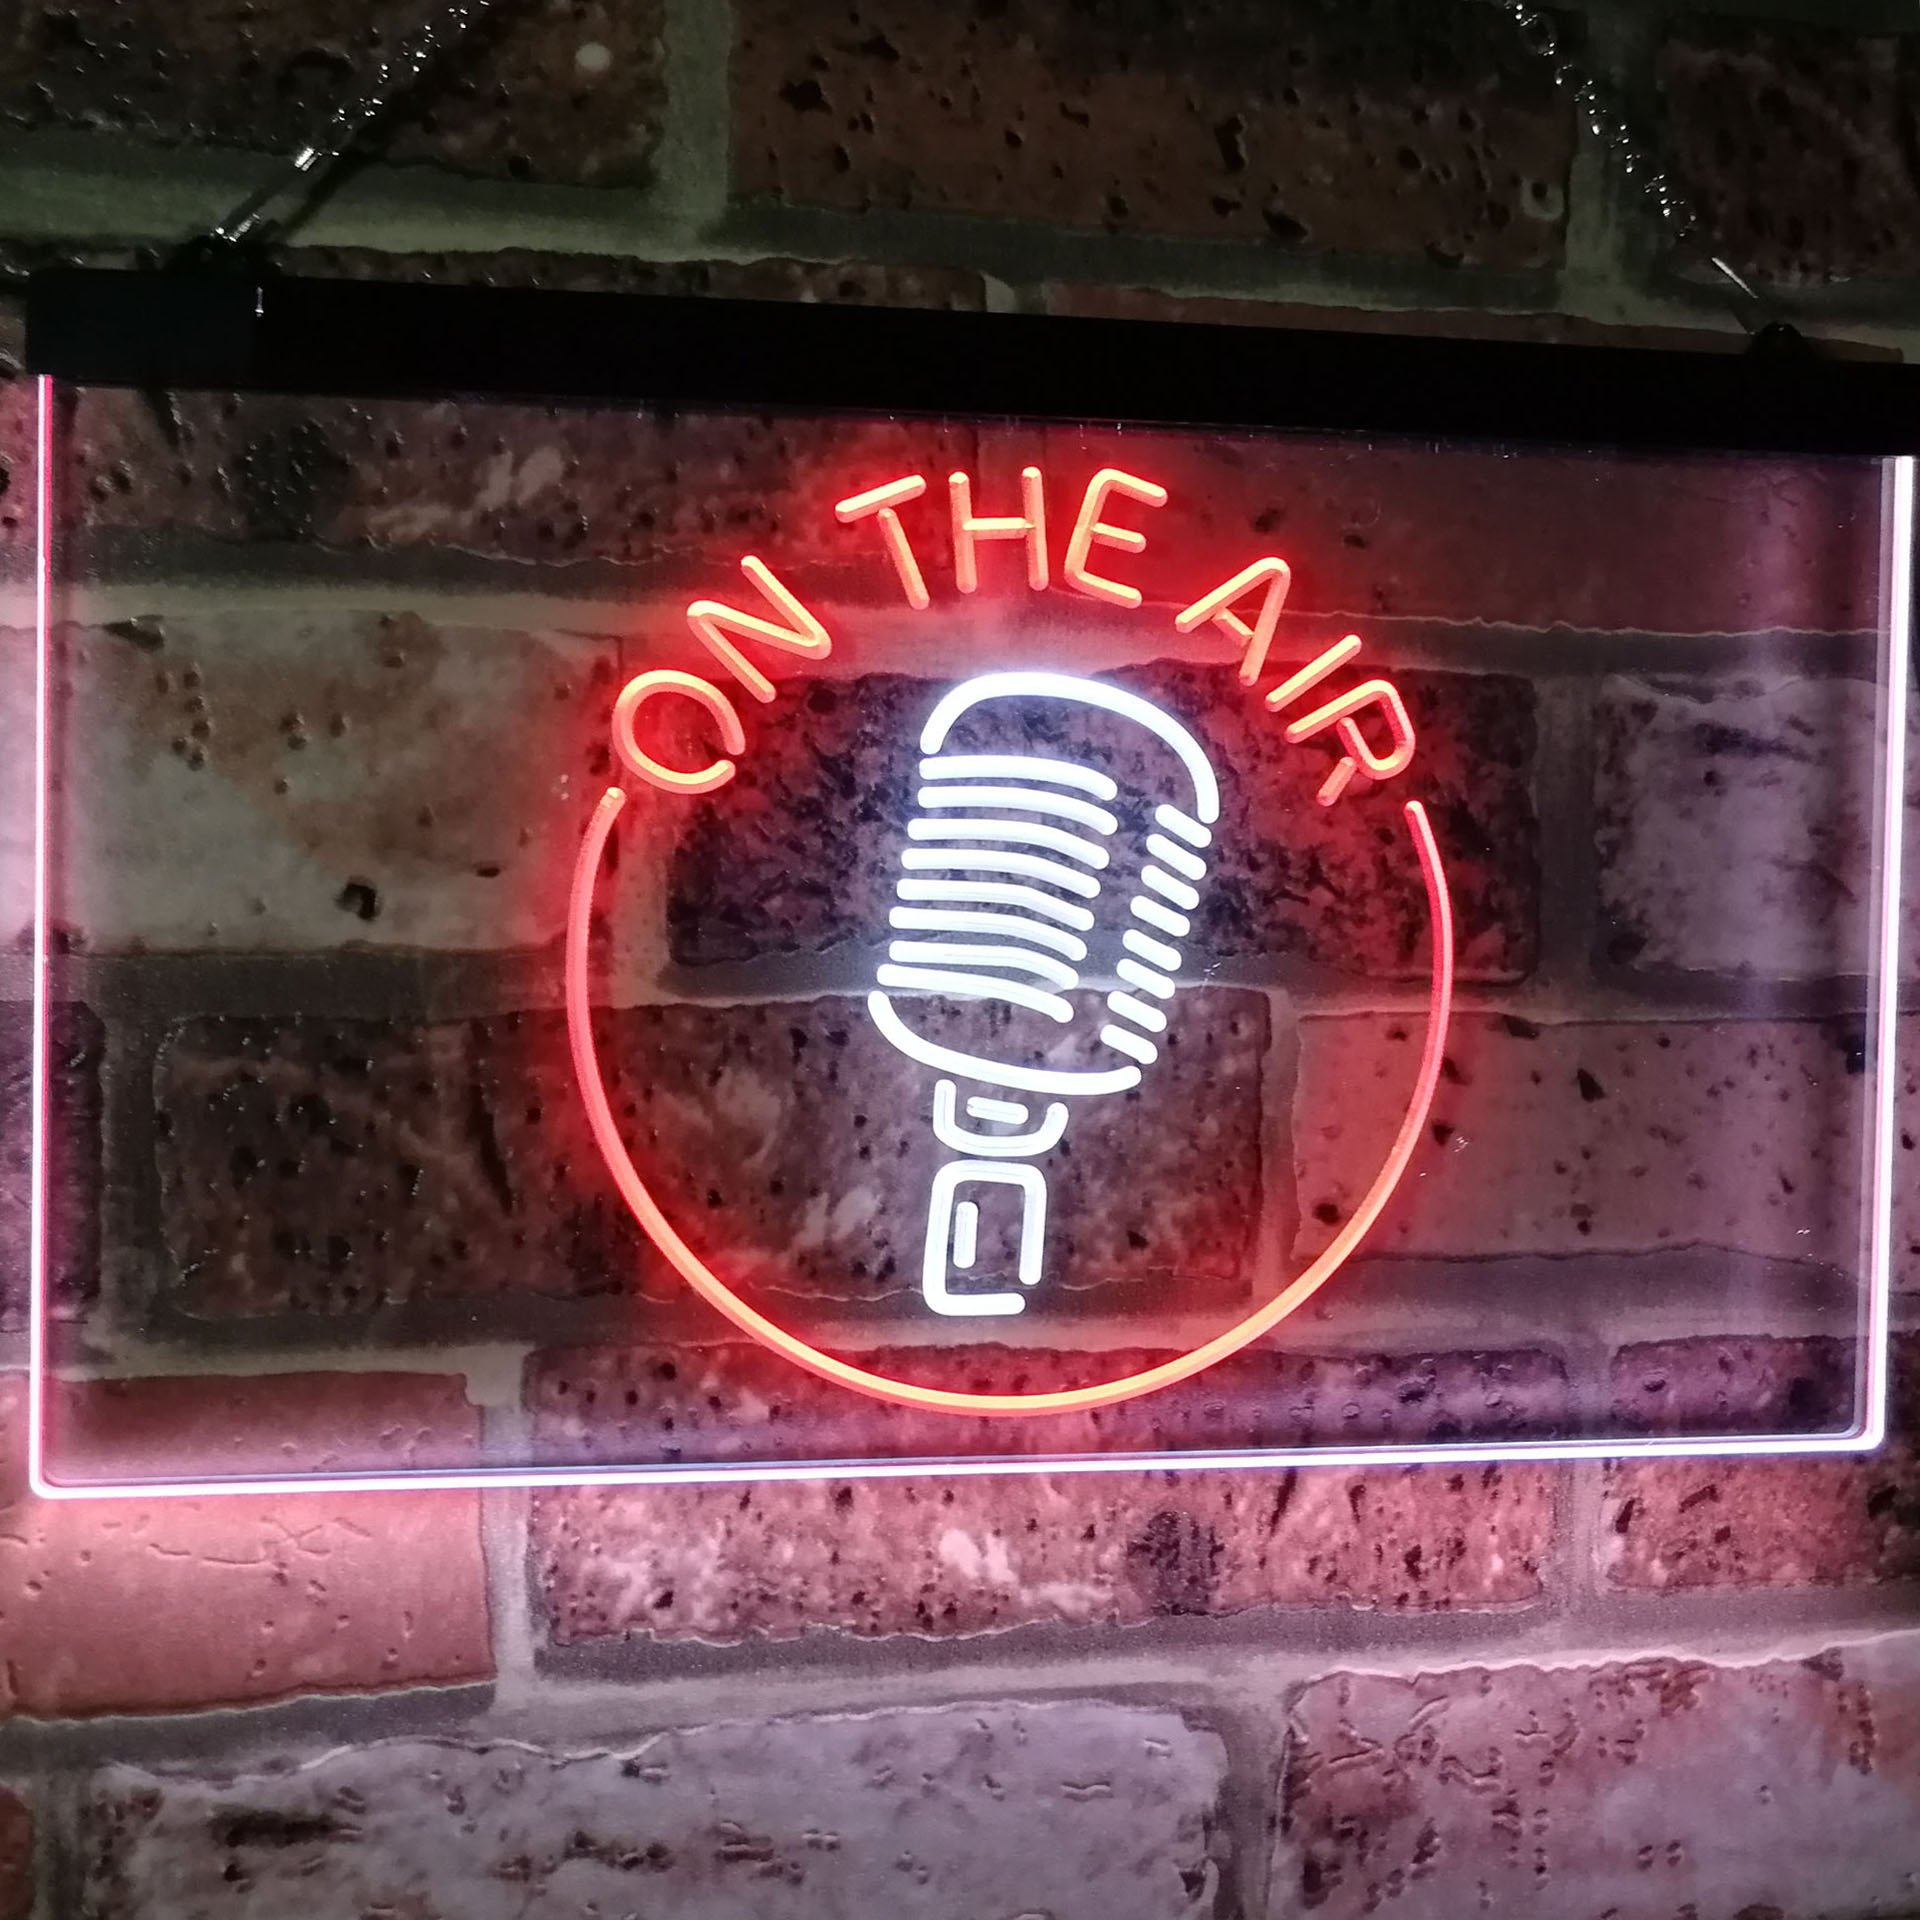 AdvpPro 2C On The Air Microphone Studio Recording Signal Dual Color LED Neon Sign White & Red 12'' x 8.5'' st6s32-m2028-wr by AdvpPro 2C (Image #3)